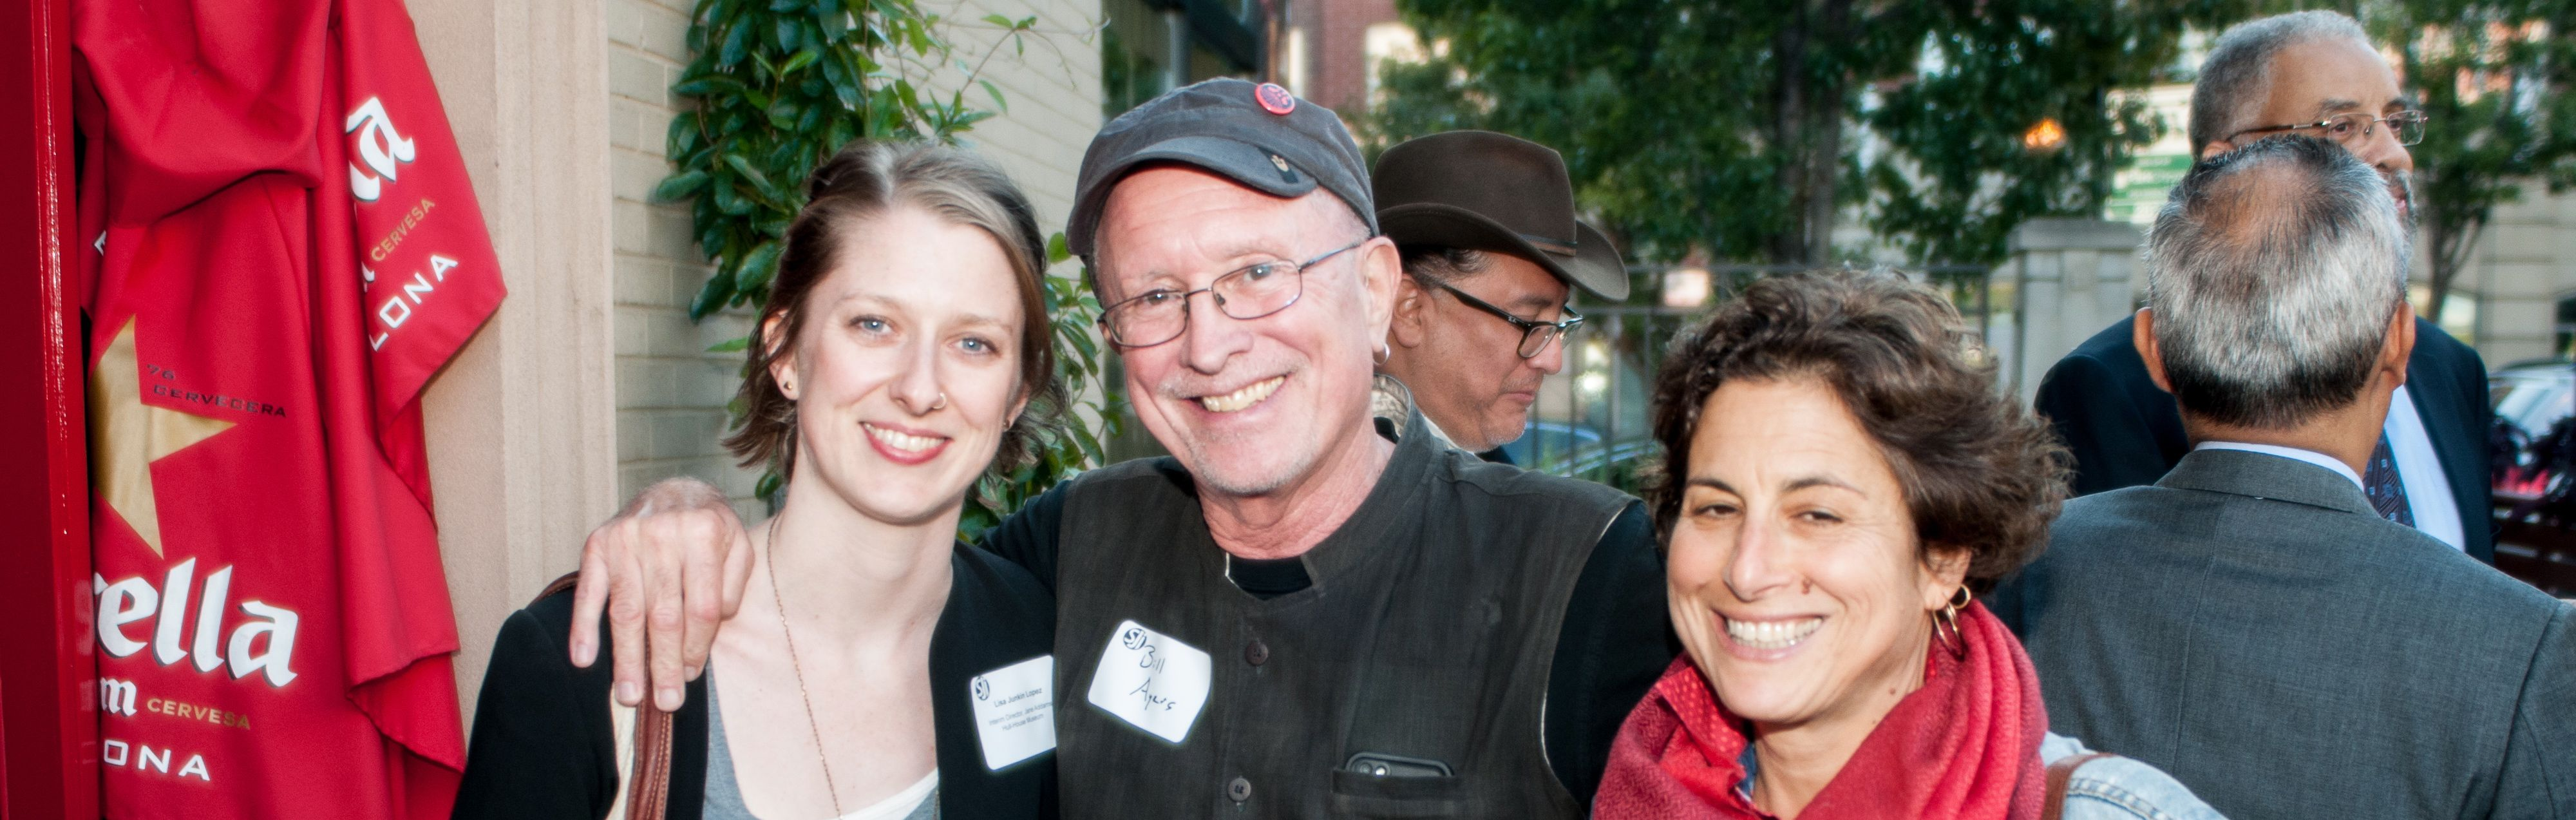 Bill Ayers @ SJI Fall Welcome Reception, 2014